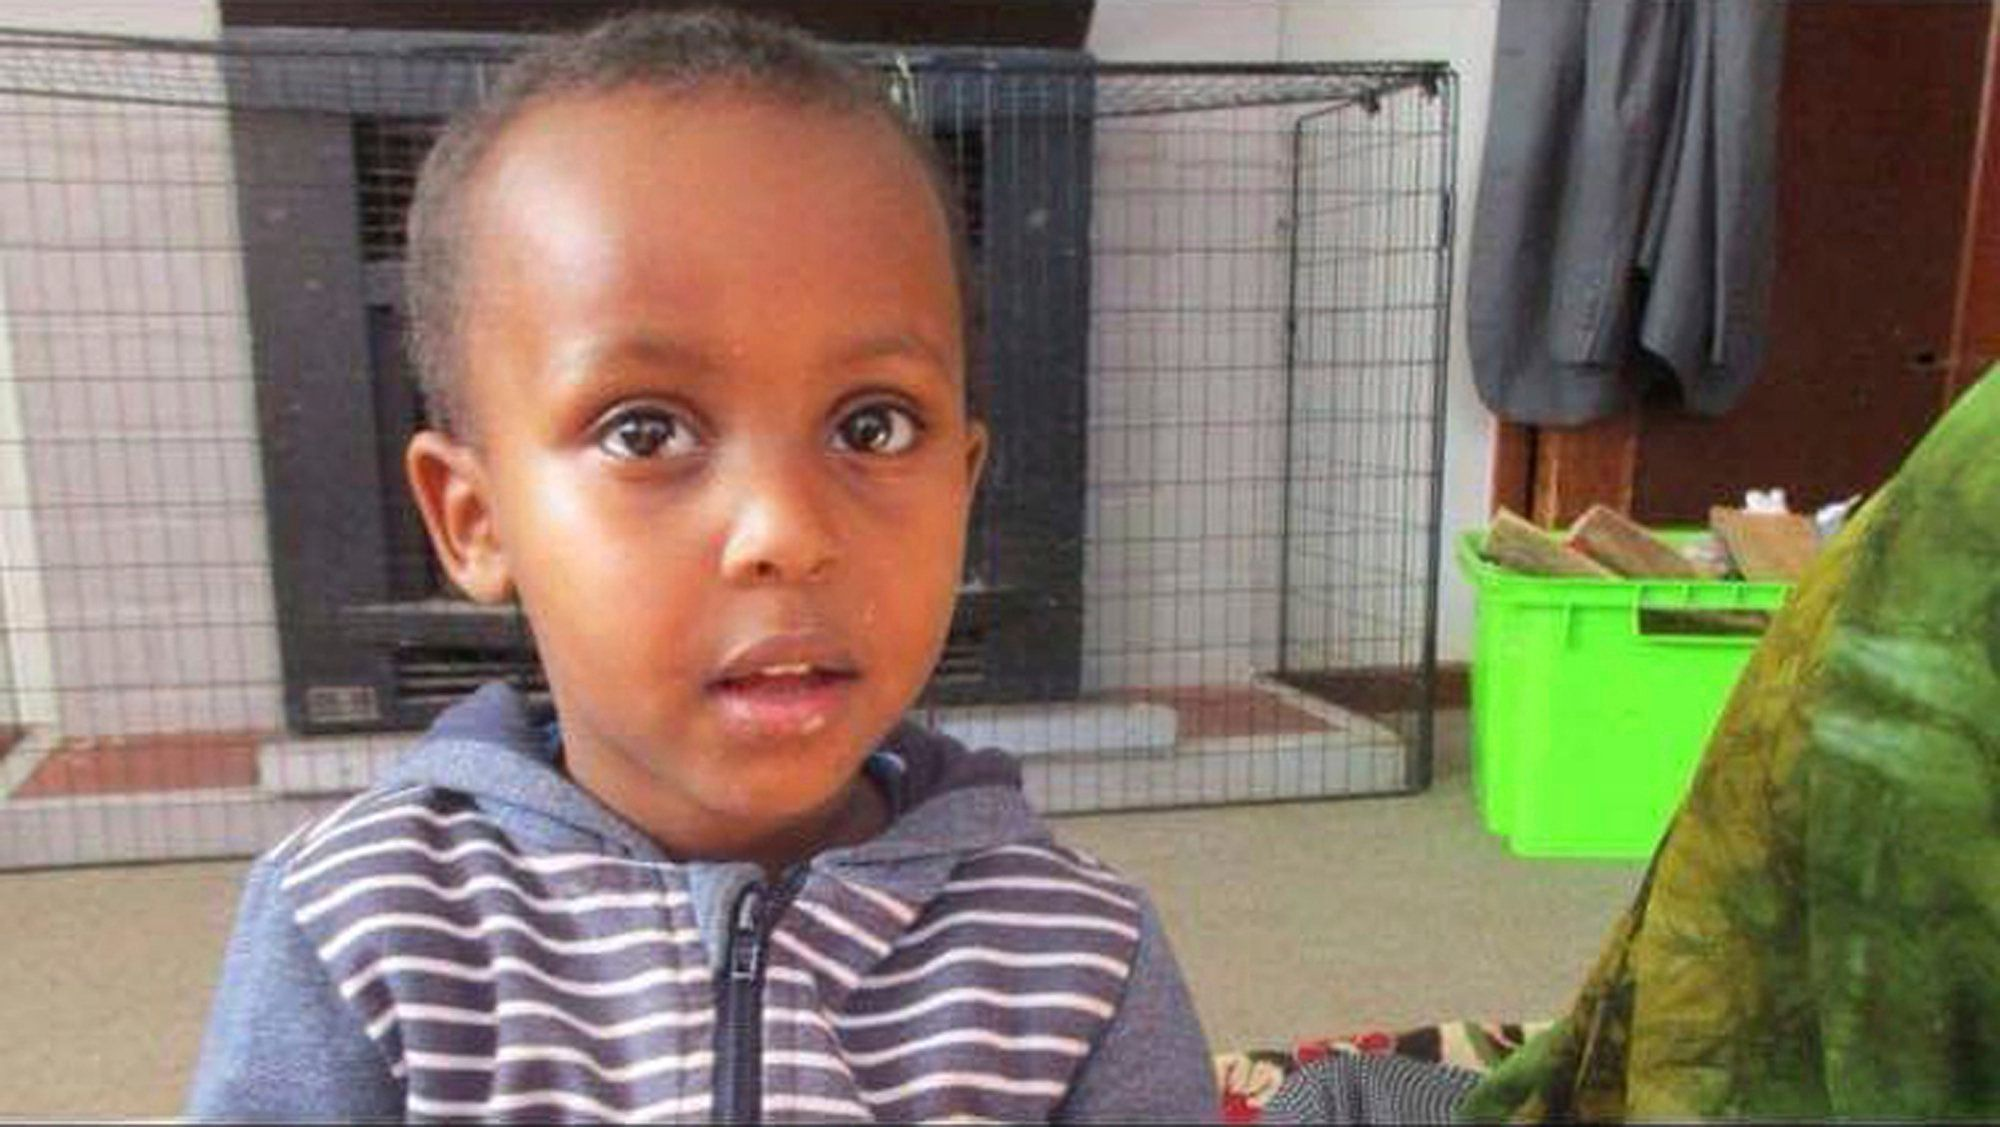 This Playful, Bright 3-Year-Old Boy Was The New Zealand Attacker's Youngest Victim